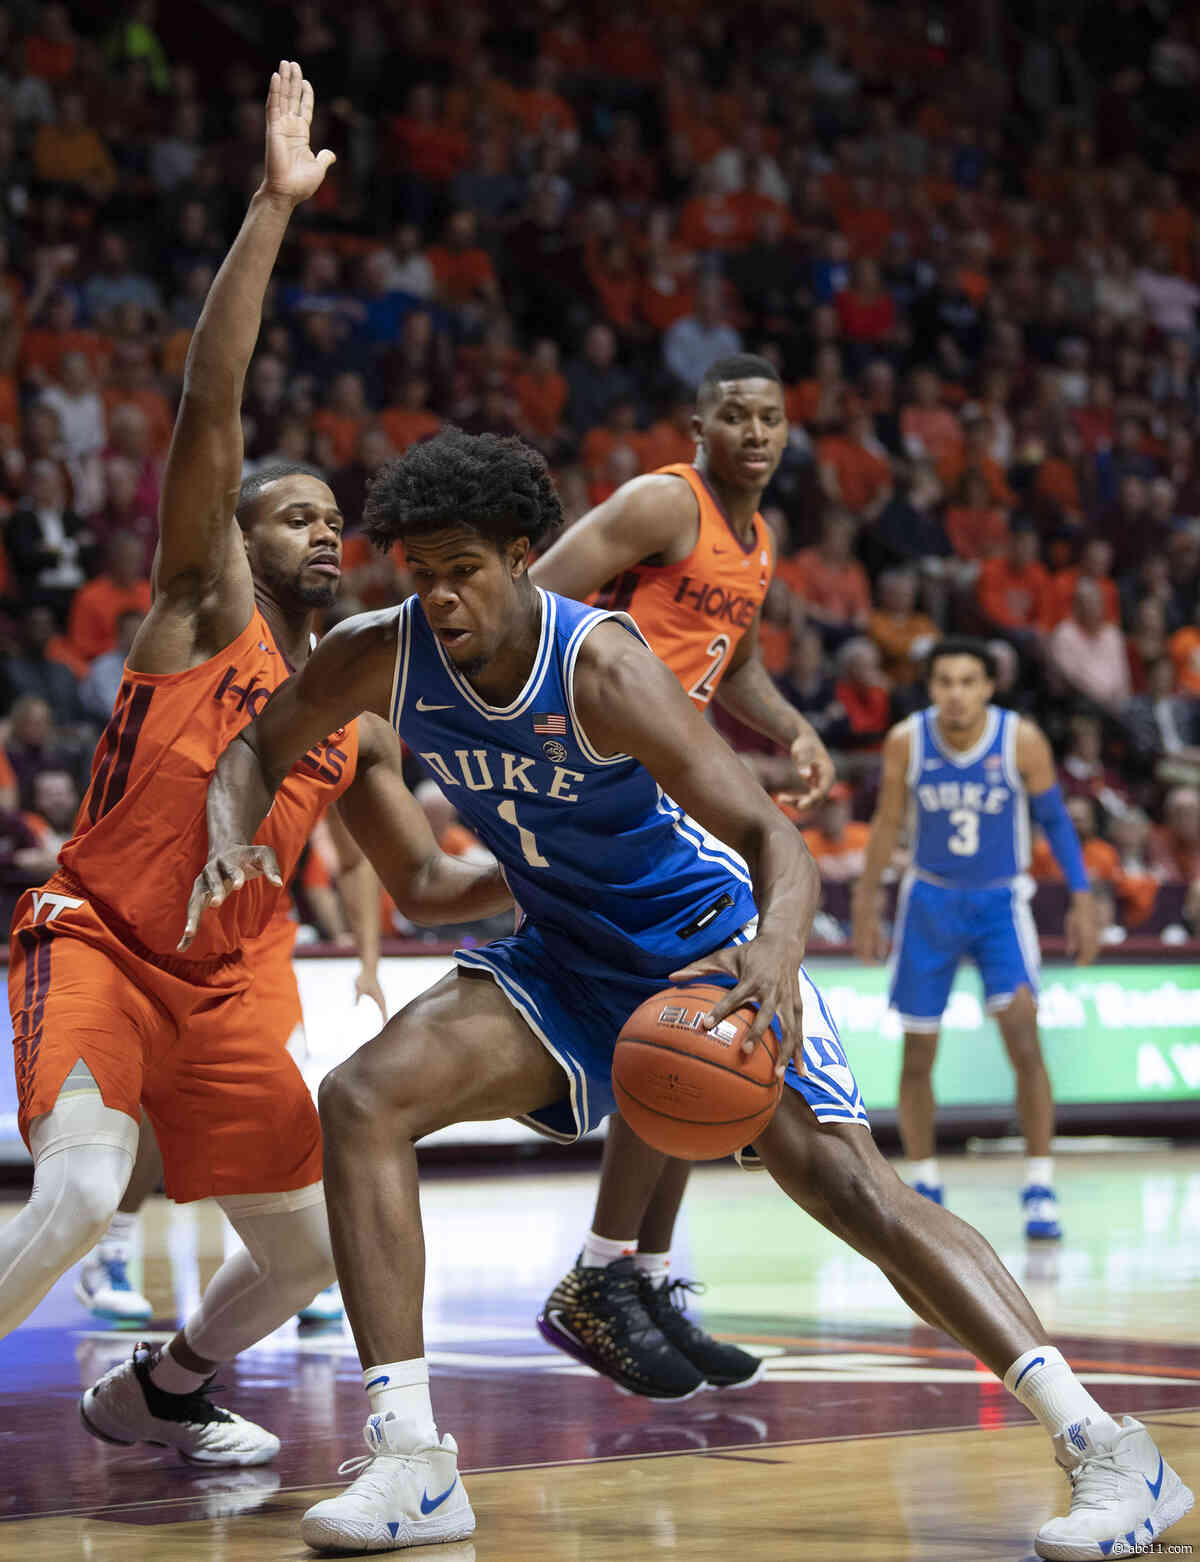 Duke downs Virginia Tech 77-63 in its ACC opener